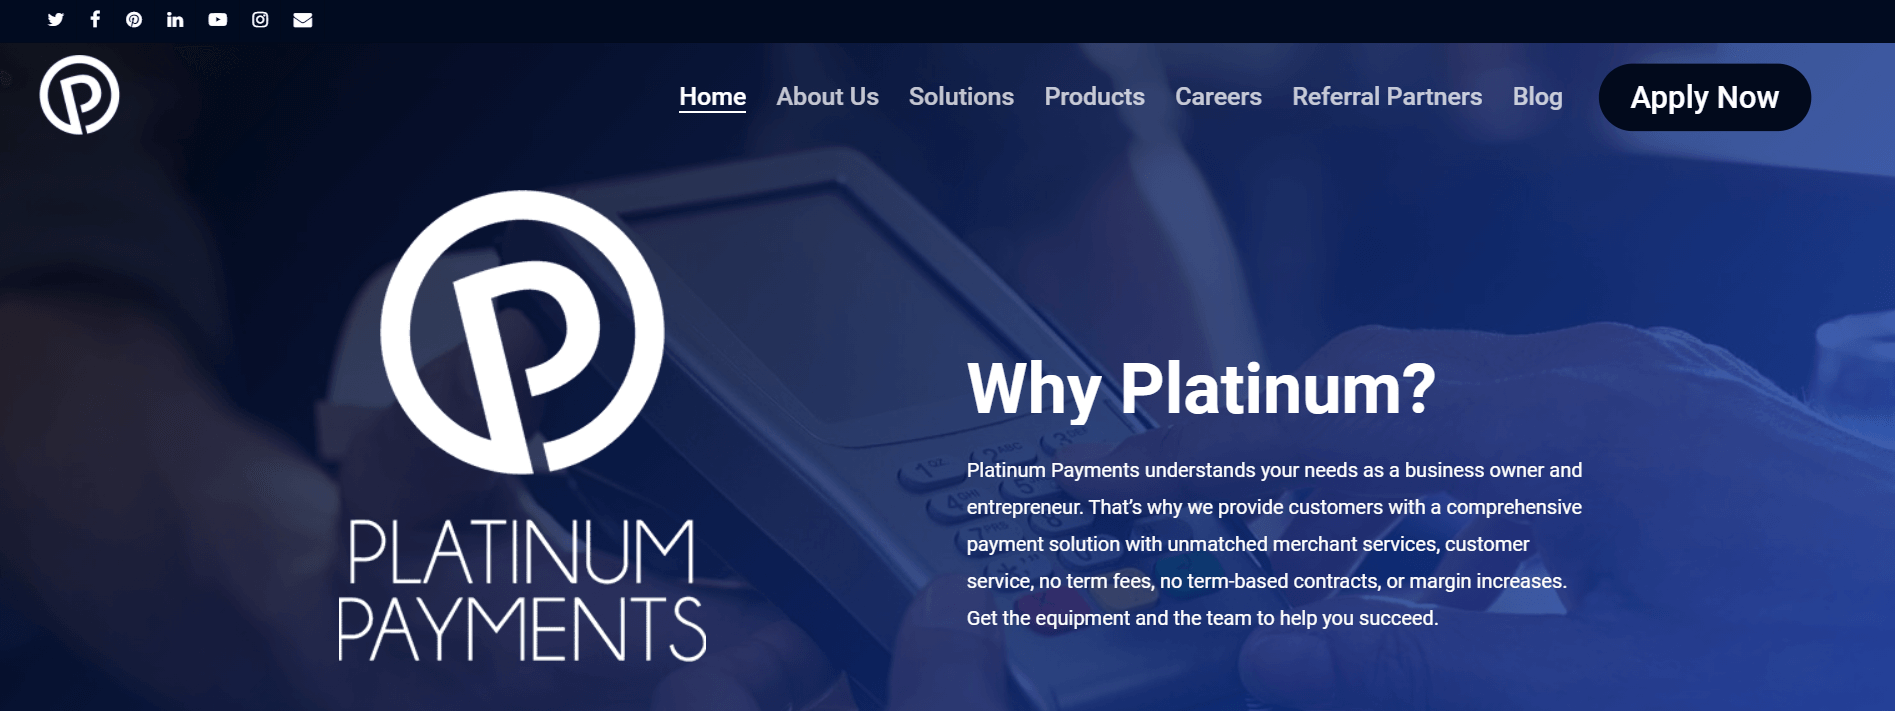 platinum payments home page